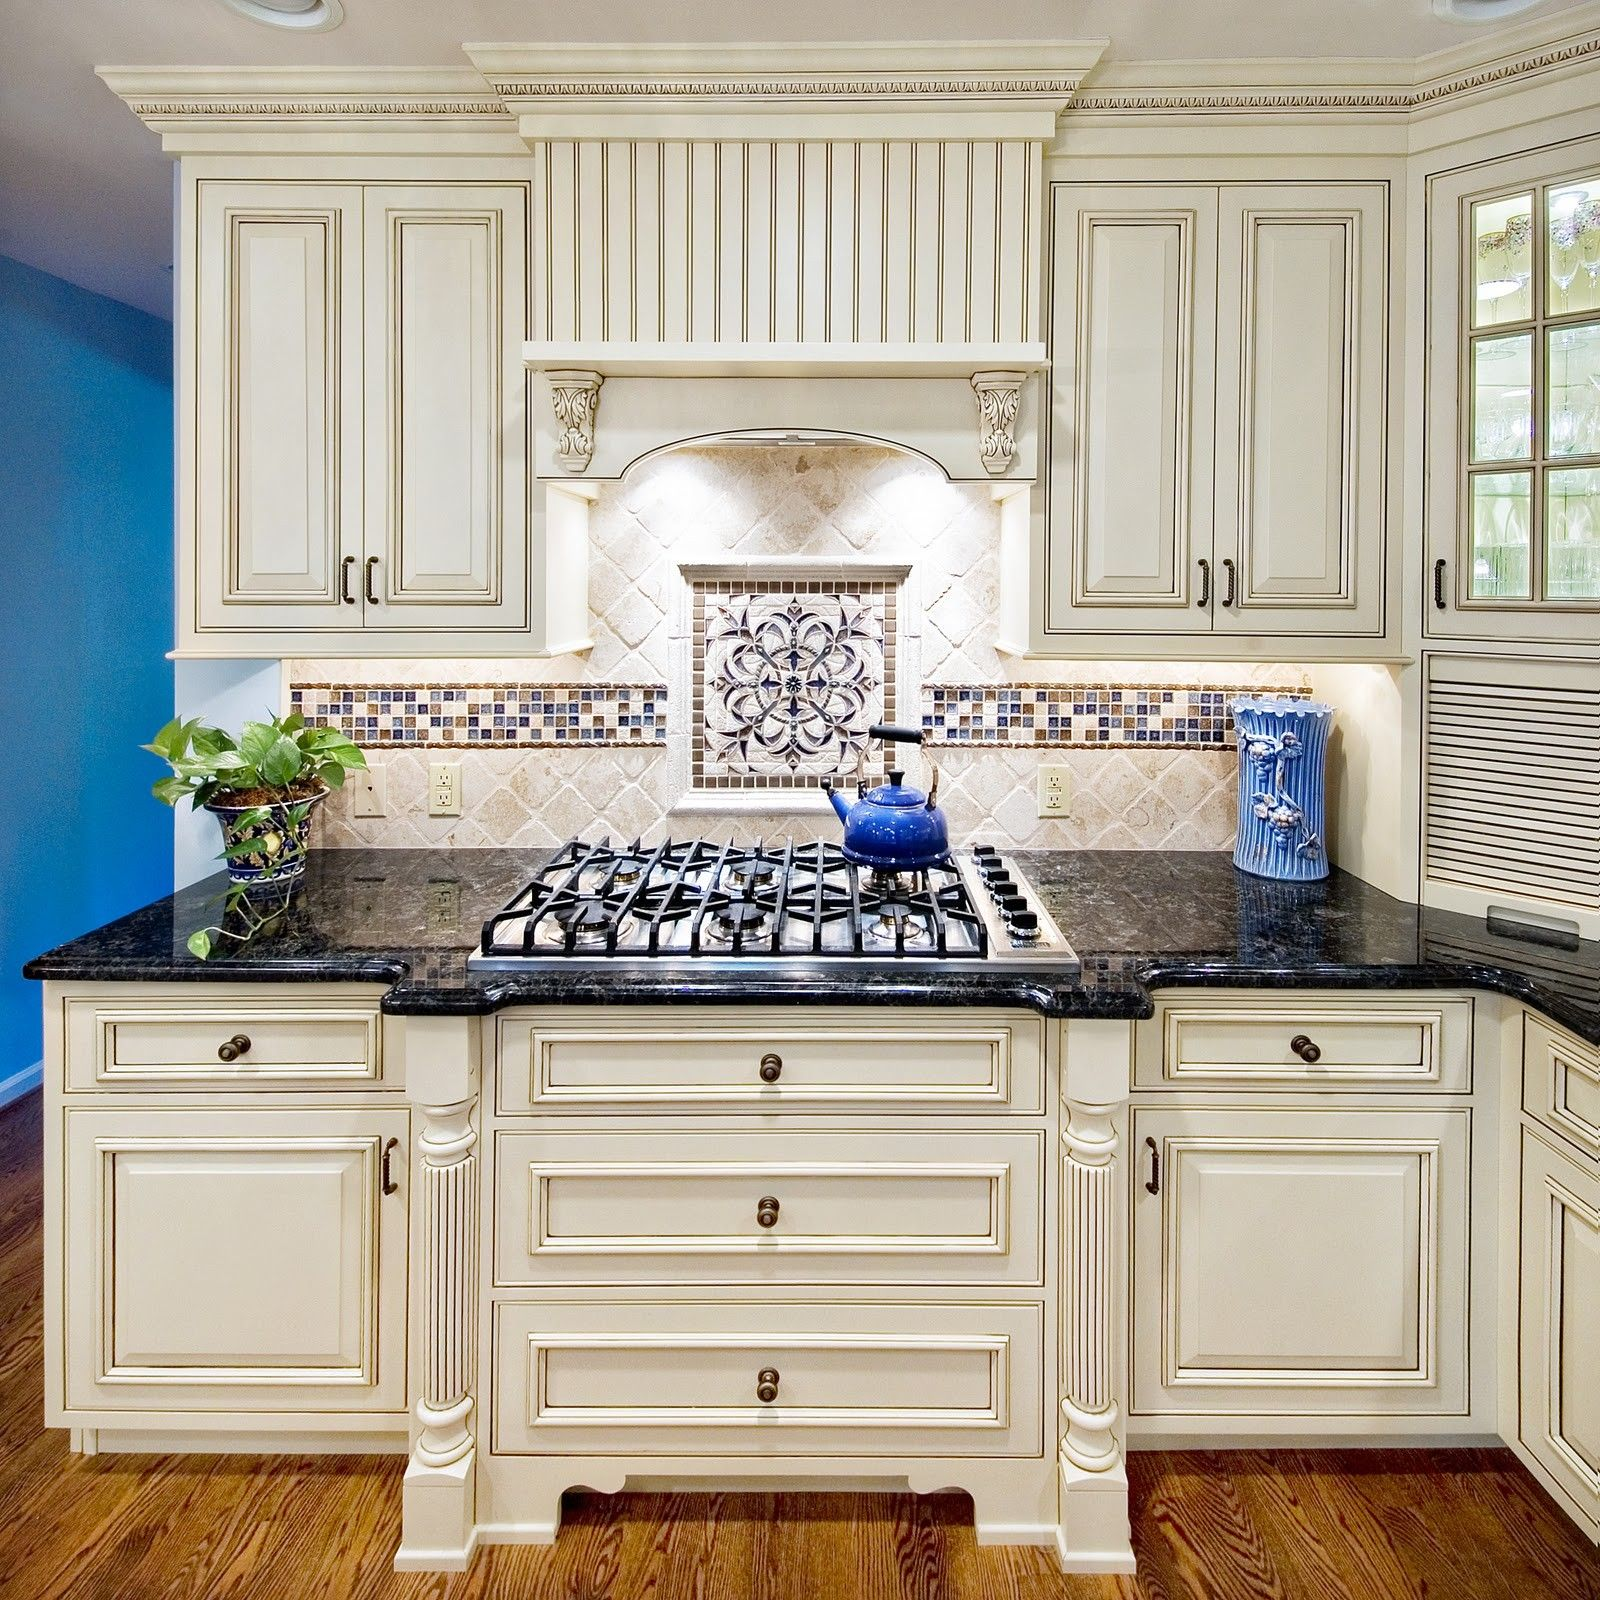 Kitchen Backsplash Ideas With Cream Cabinets kitchen tile backsplash ideas with cream cabinets. www.decdens